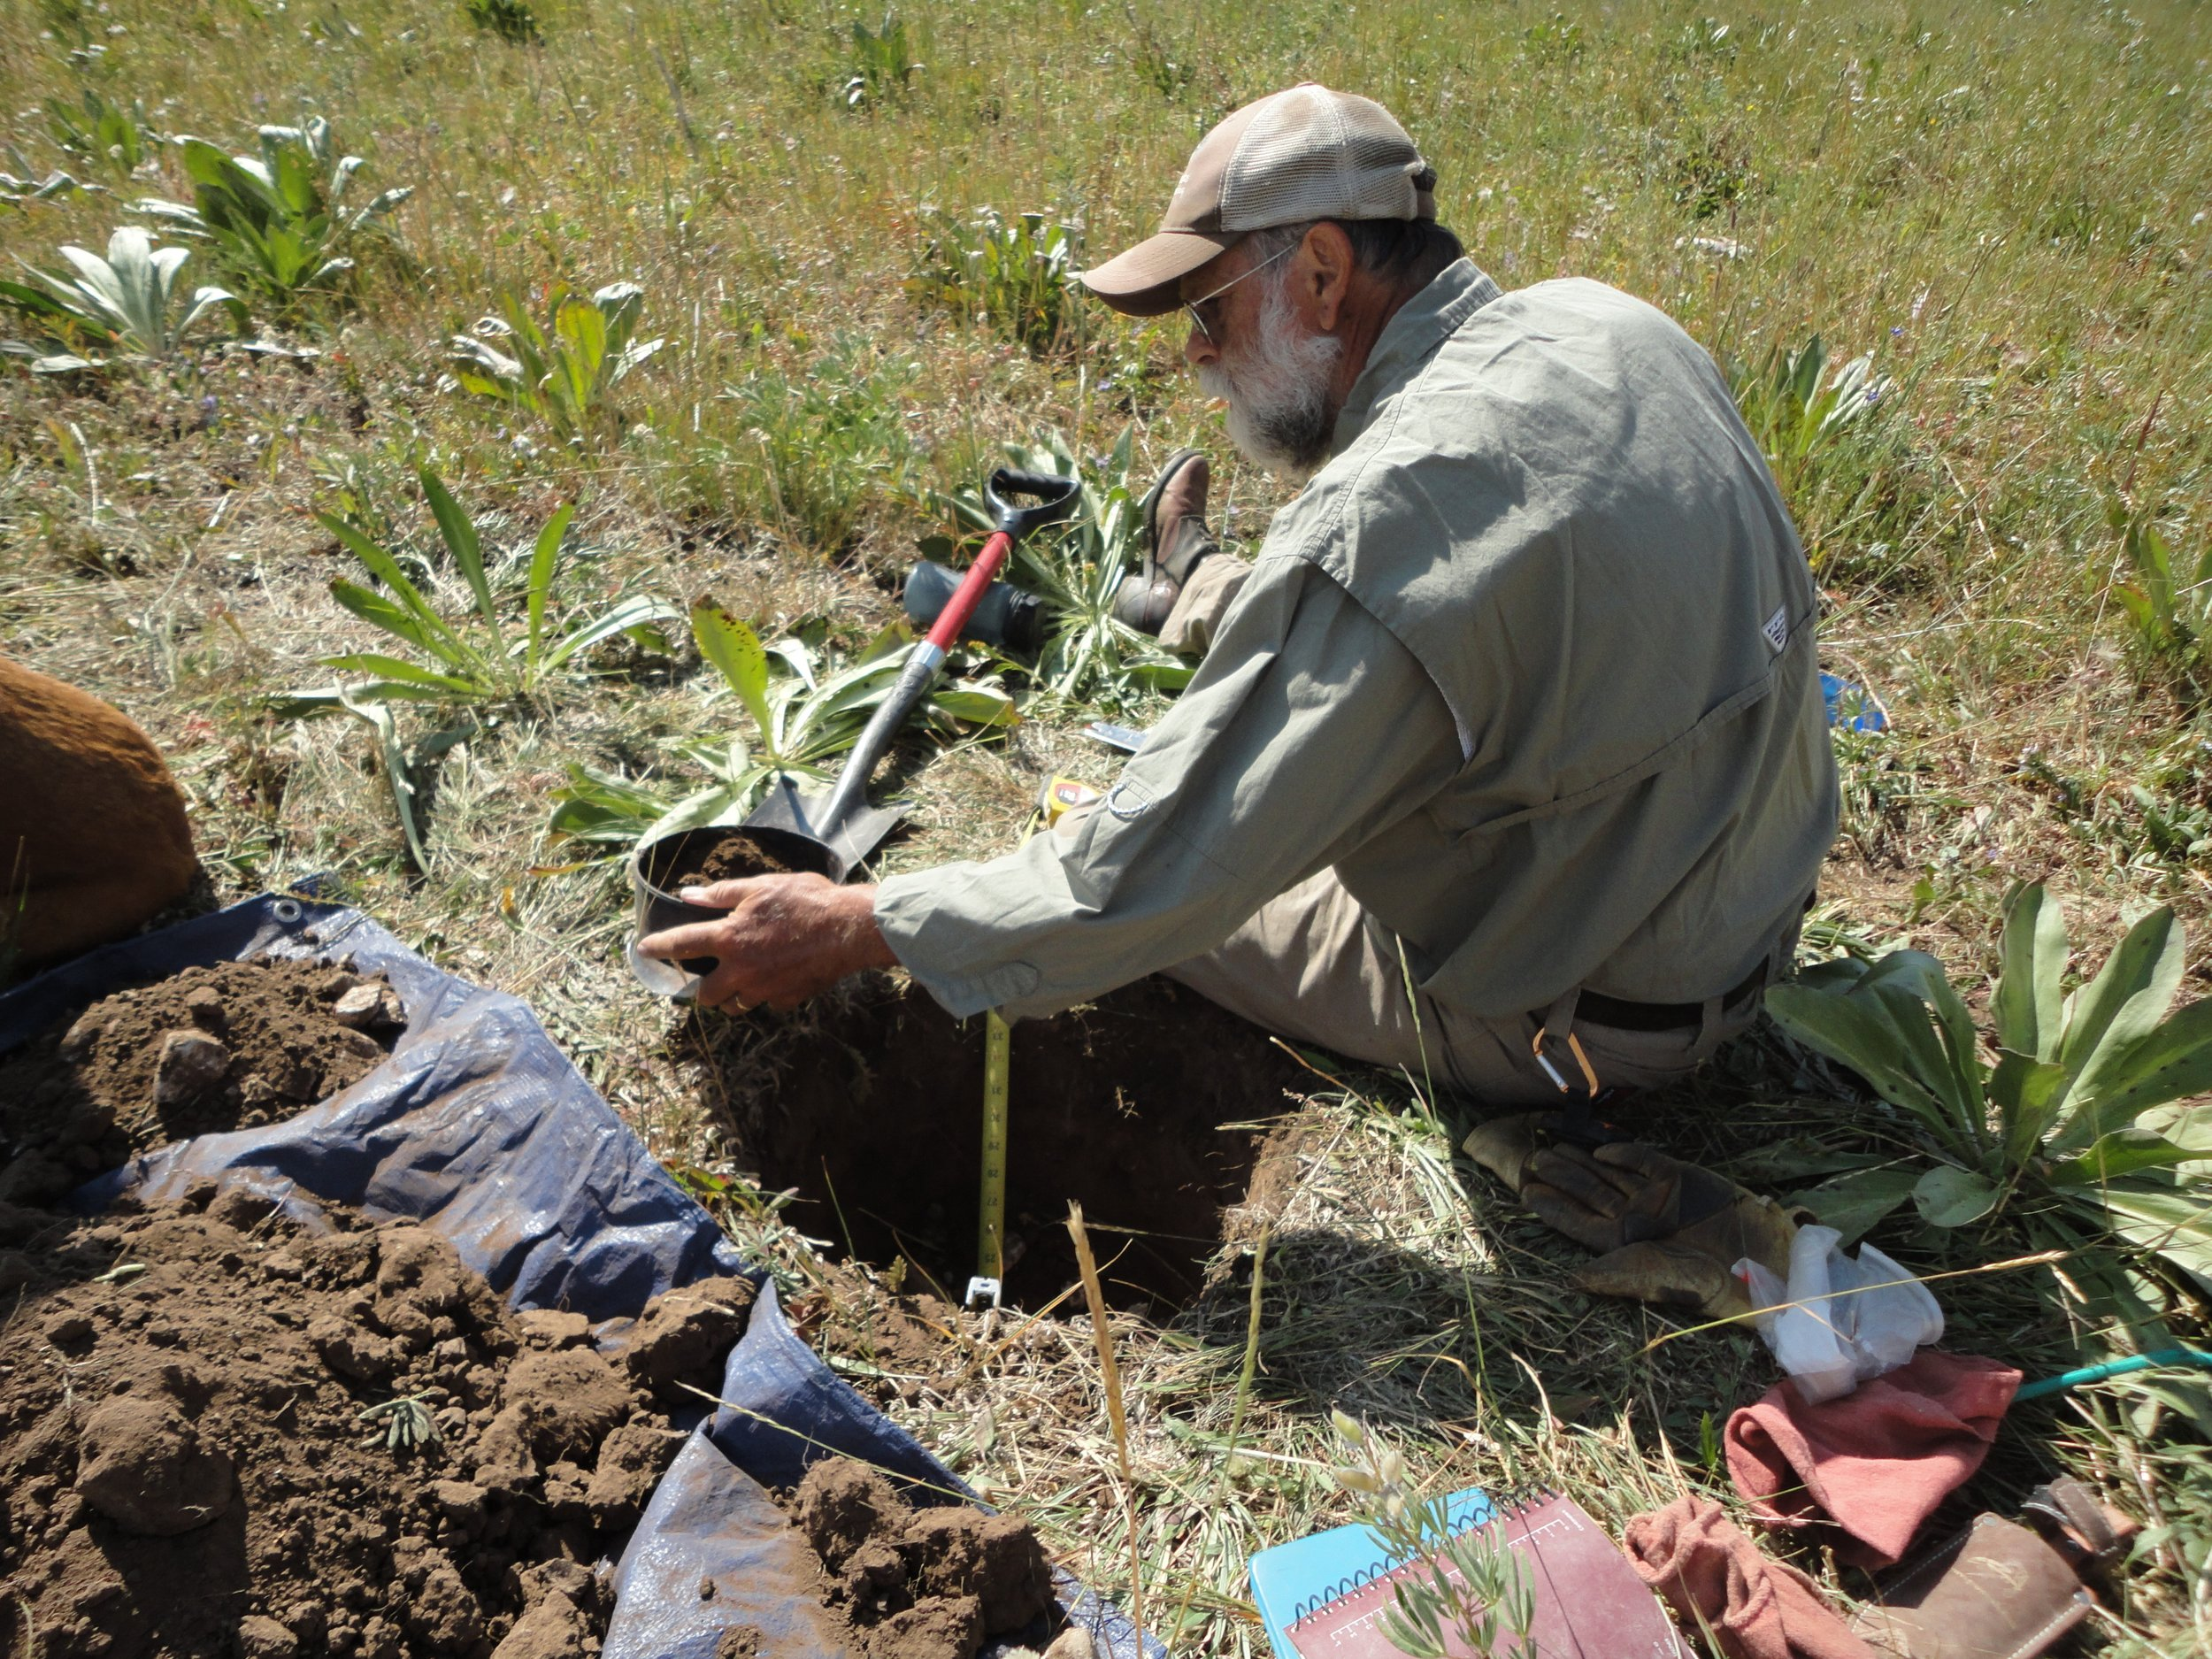 Chuck Butterfield, PhD with Y2 Consultants characterizes a soil pit during rangeland monitoring. Photo credit: Robb Sgroi